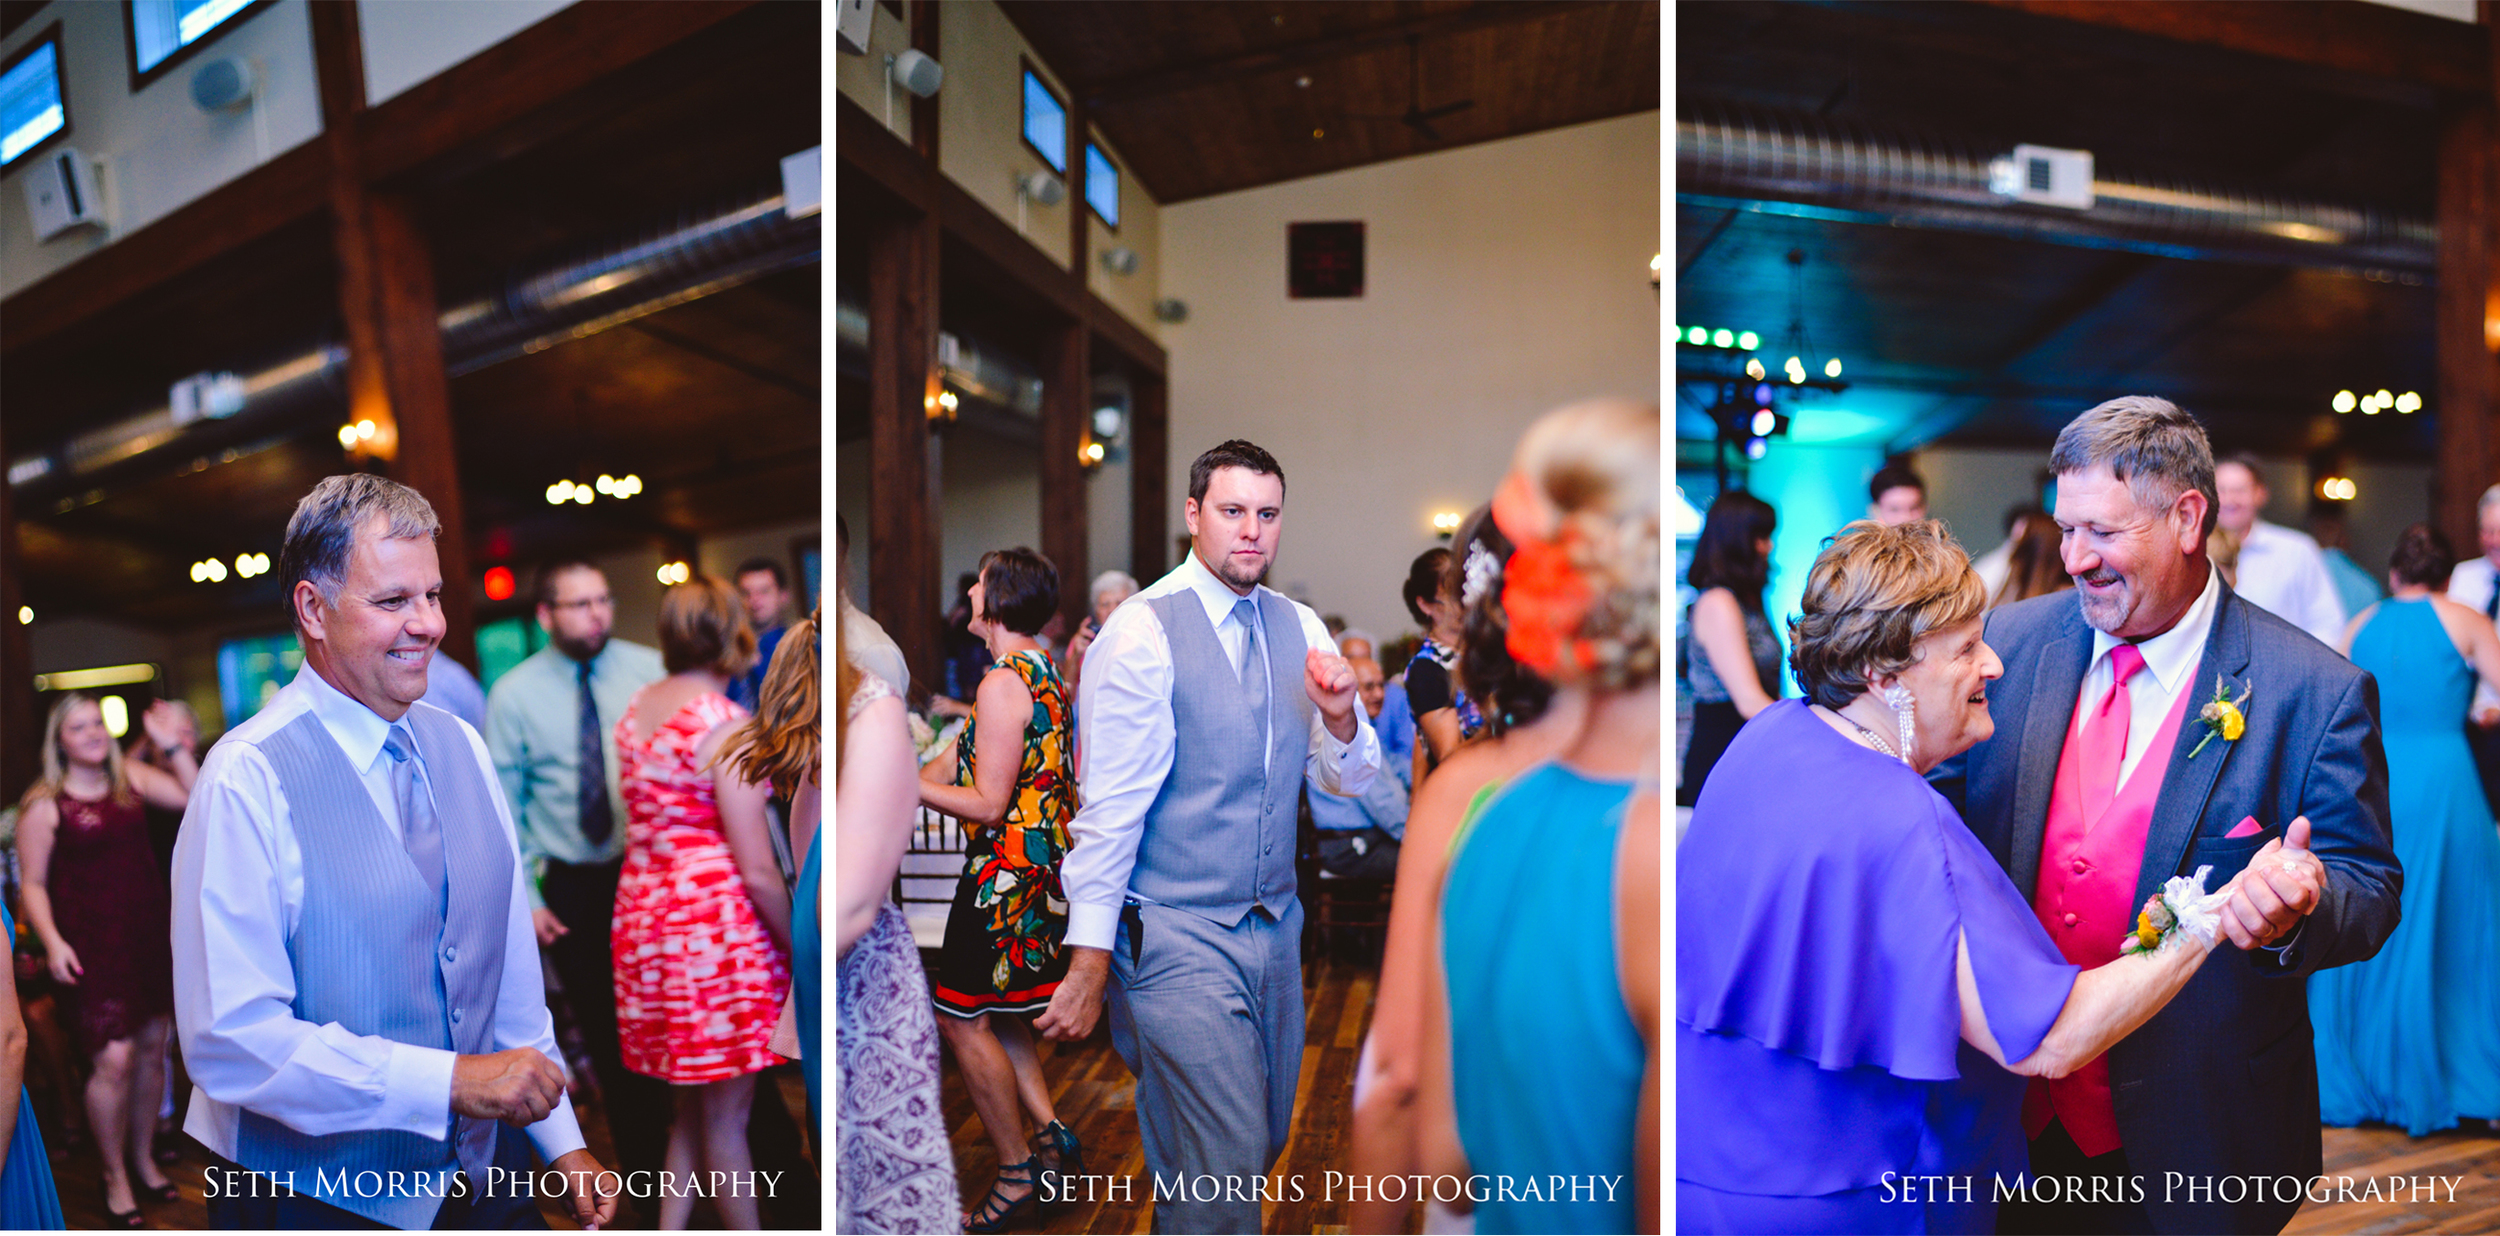 hornbaker-barn-wedding-photo-princeton-photographer-92.jpg